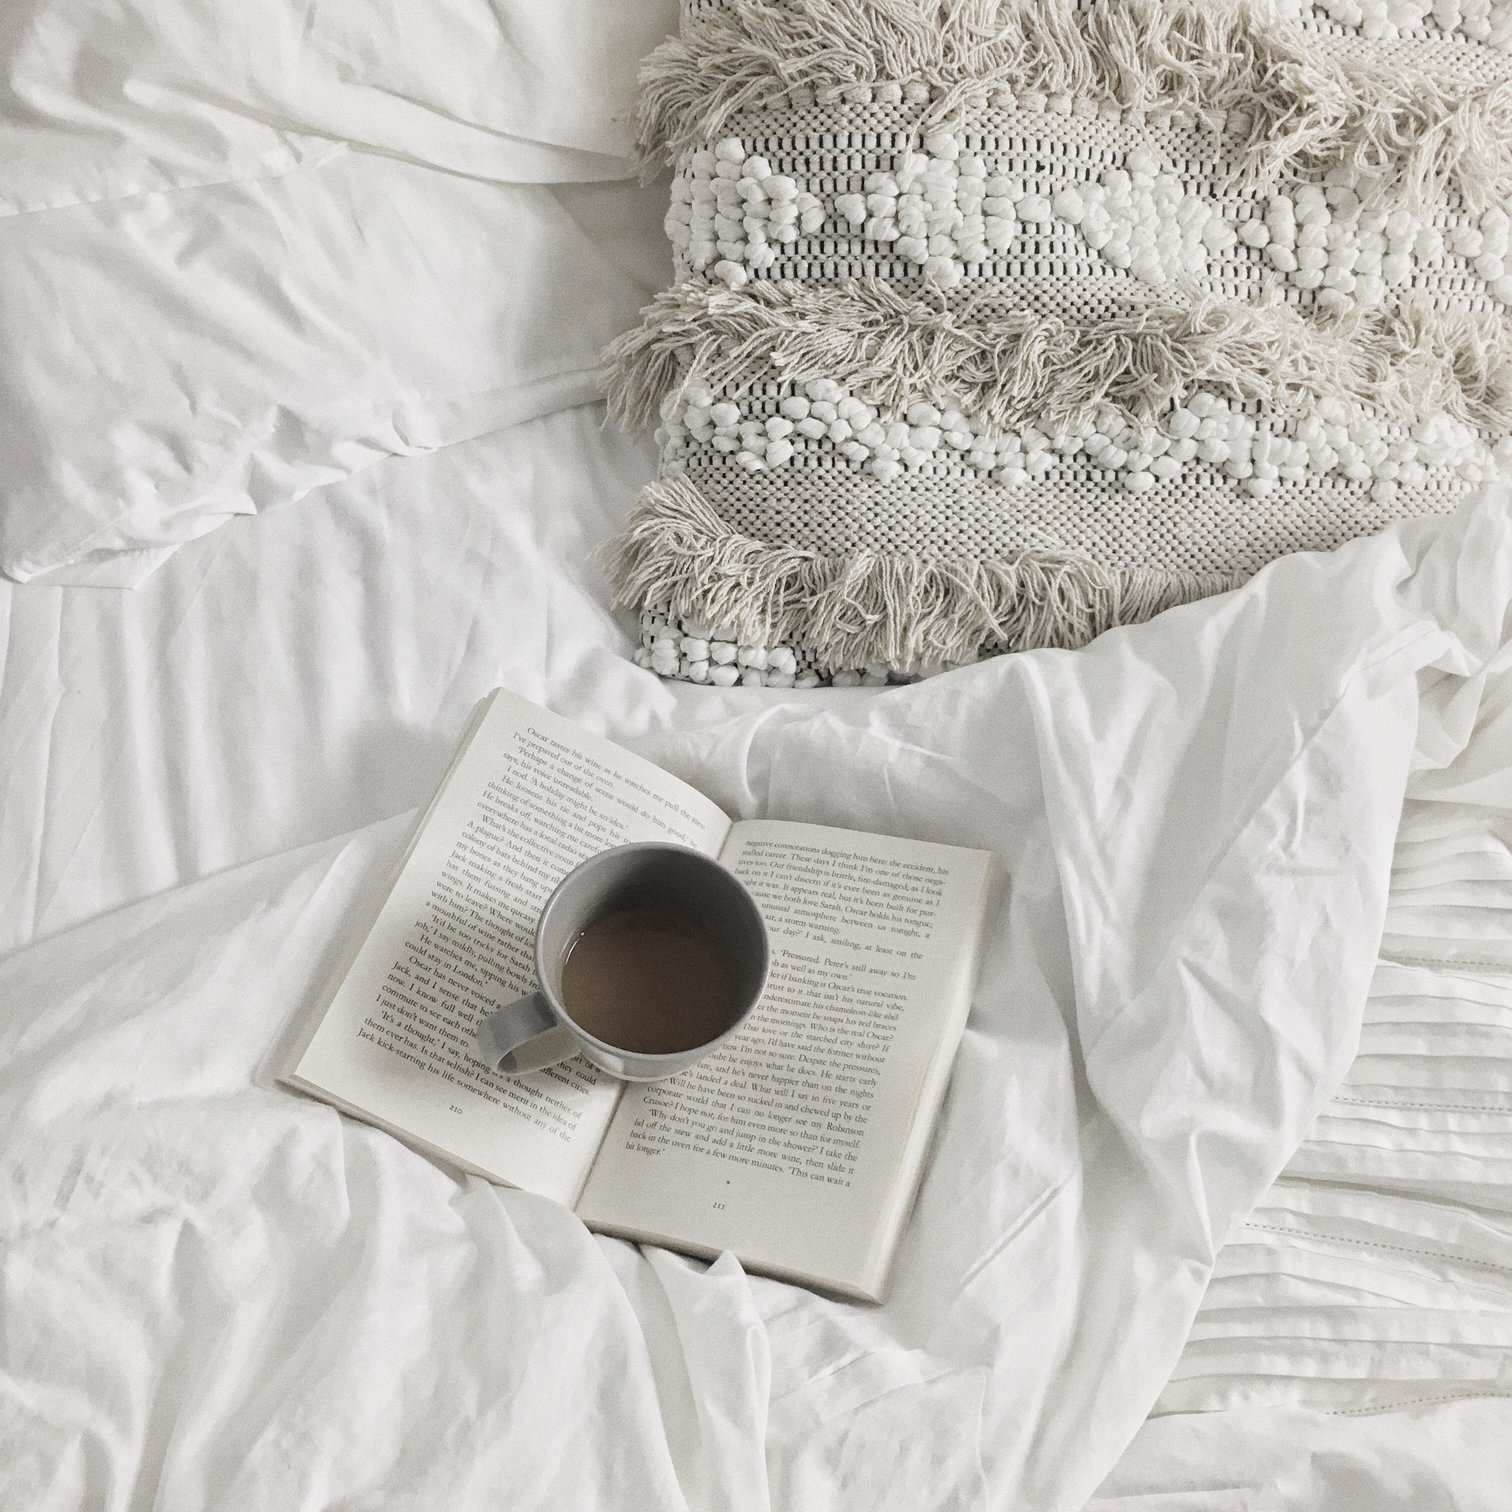 Book and cup of tea of a white duvet